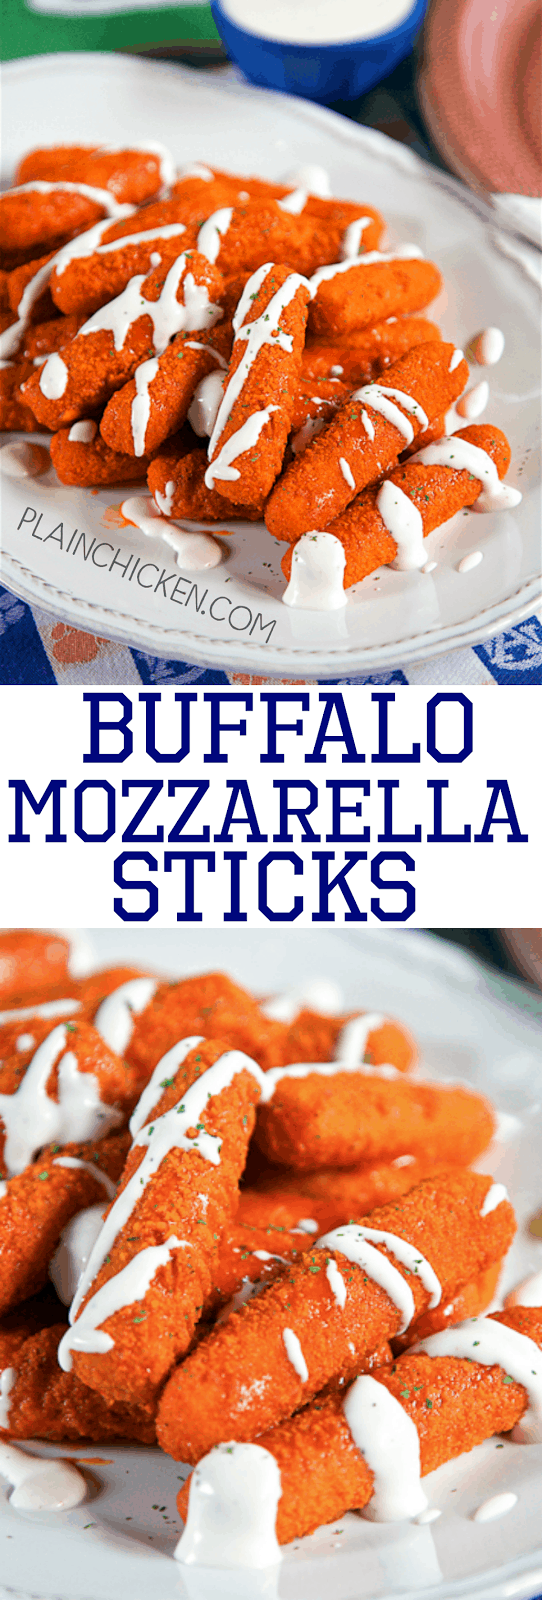 Buffalo Mozzarella Sticks - two favorites combined into one! SO good! Only 2 ingredients and ready in 15 minutes. Great for parties and tailgating.